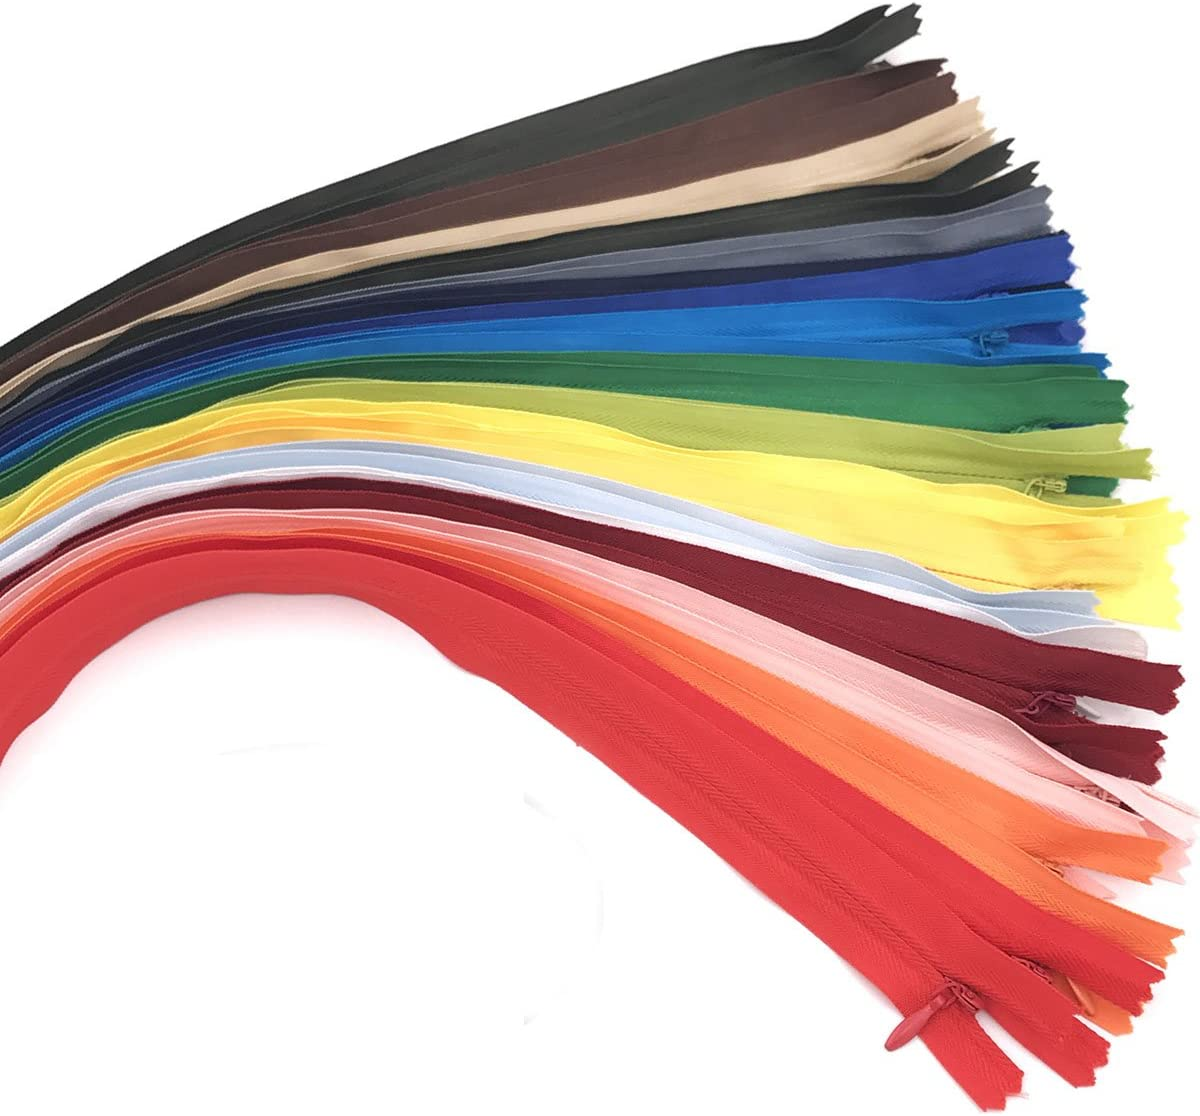 40PCS Nylon Invisible Zipper Tailor Sewer DIY Sewing Accessories for Garment/Bags/Home Textile(20 inch,Mix Color)